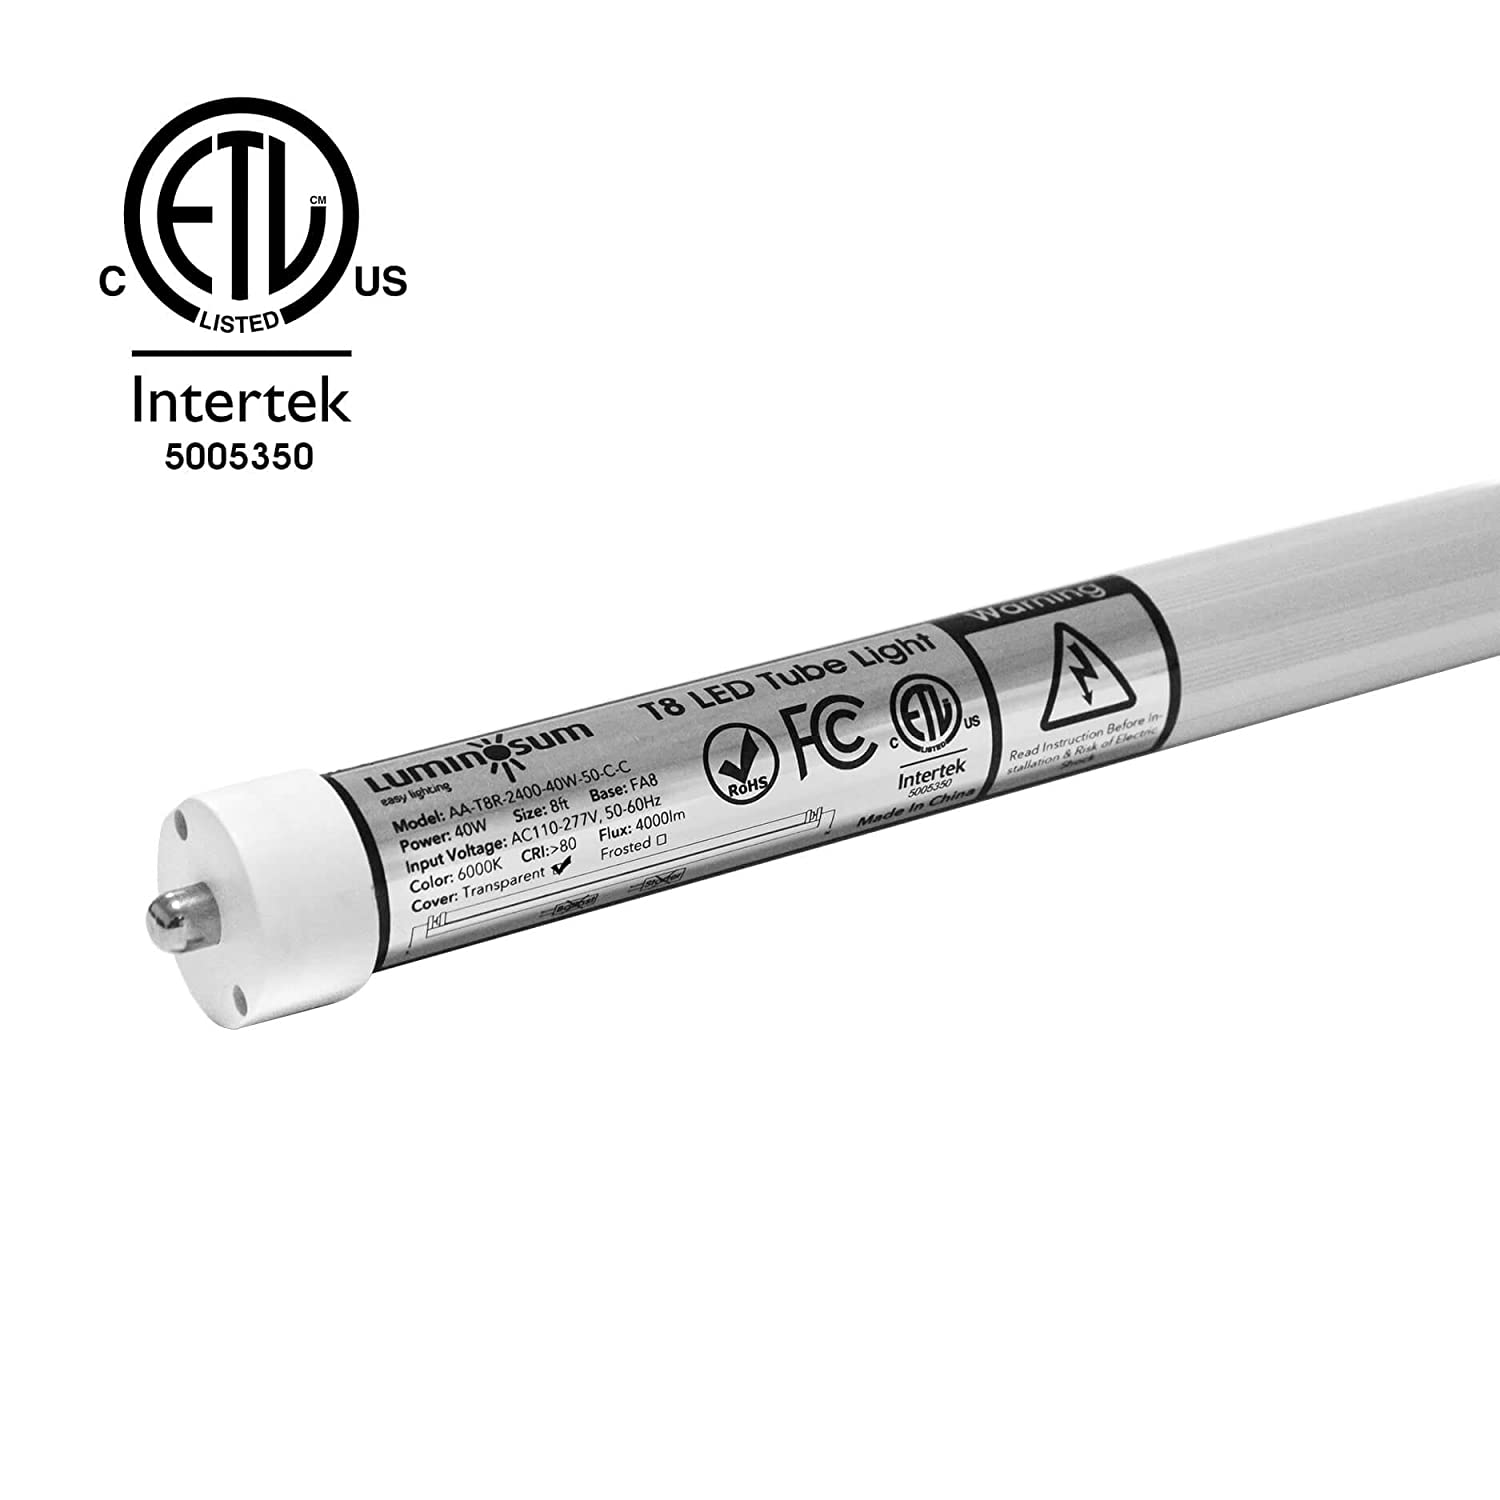 Luminosum T8 Led Tube Light 8ft 40w Single Pin Fa8 Base Clear How To Install A Fluorescent Bypassing Ballast Leds Cover Cool White 6000k Replacement Etl Certified 20 Pack Amazon